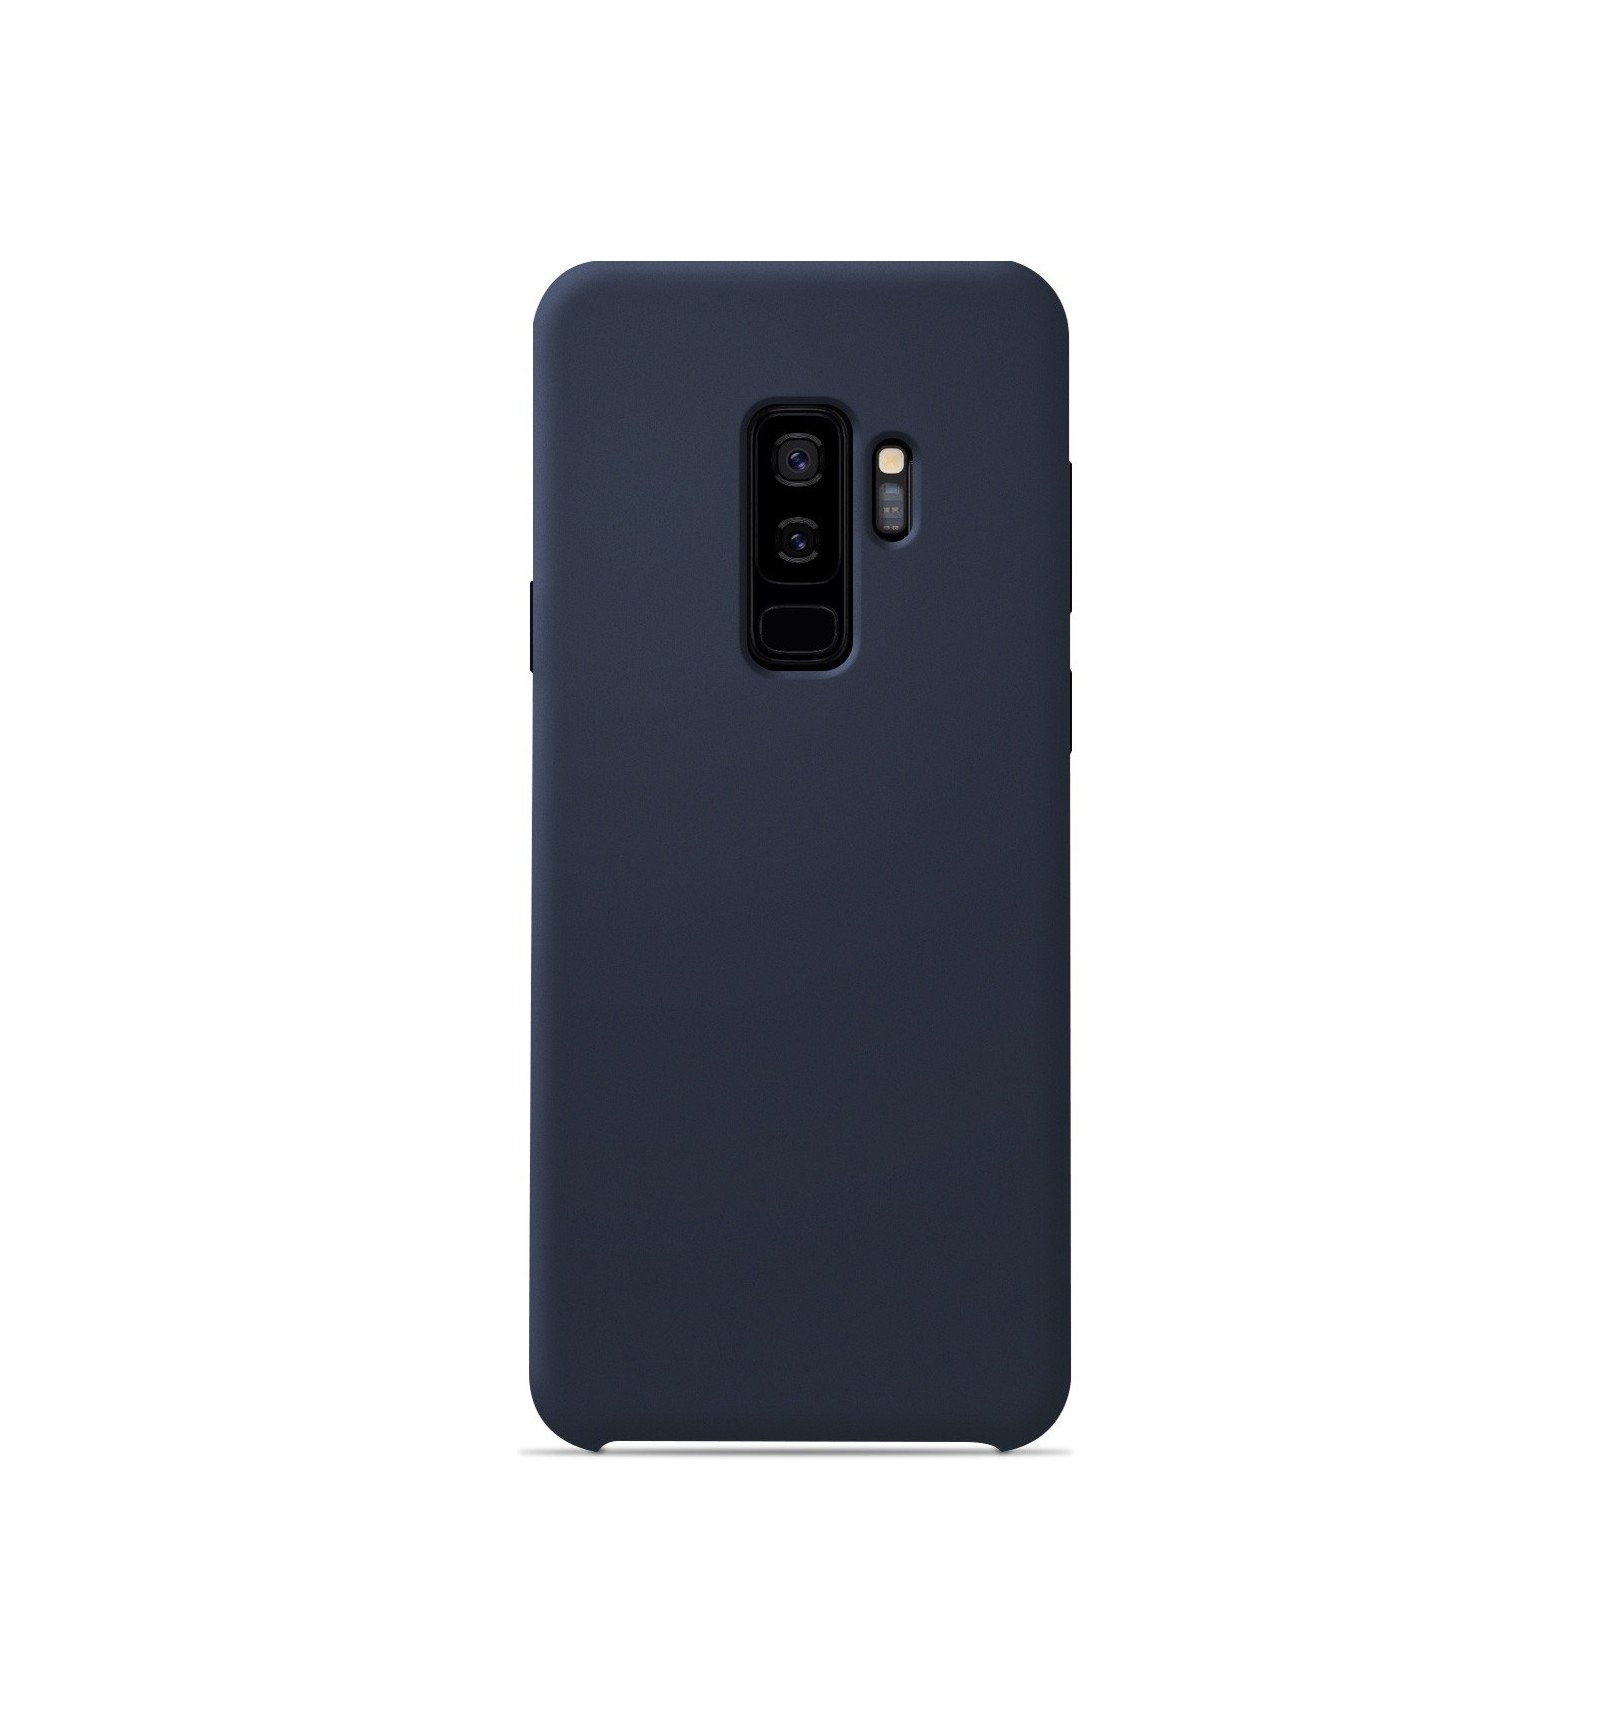 Coque Samsung Galaxy S9 Plus Silicone Soft Touch - Bleu nuit